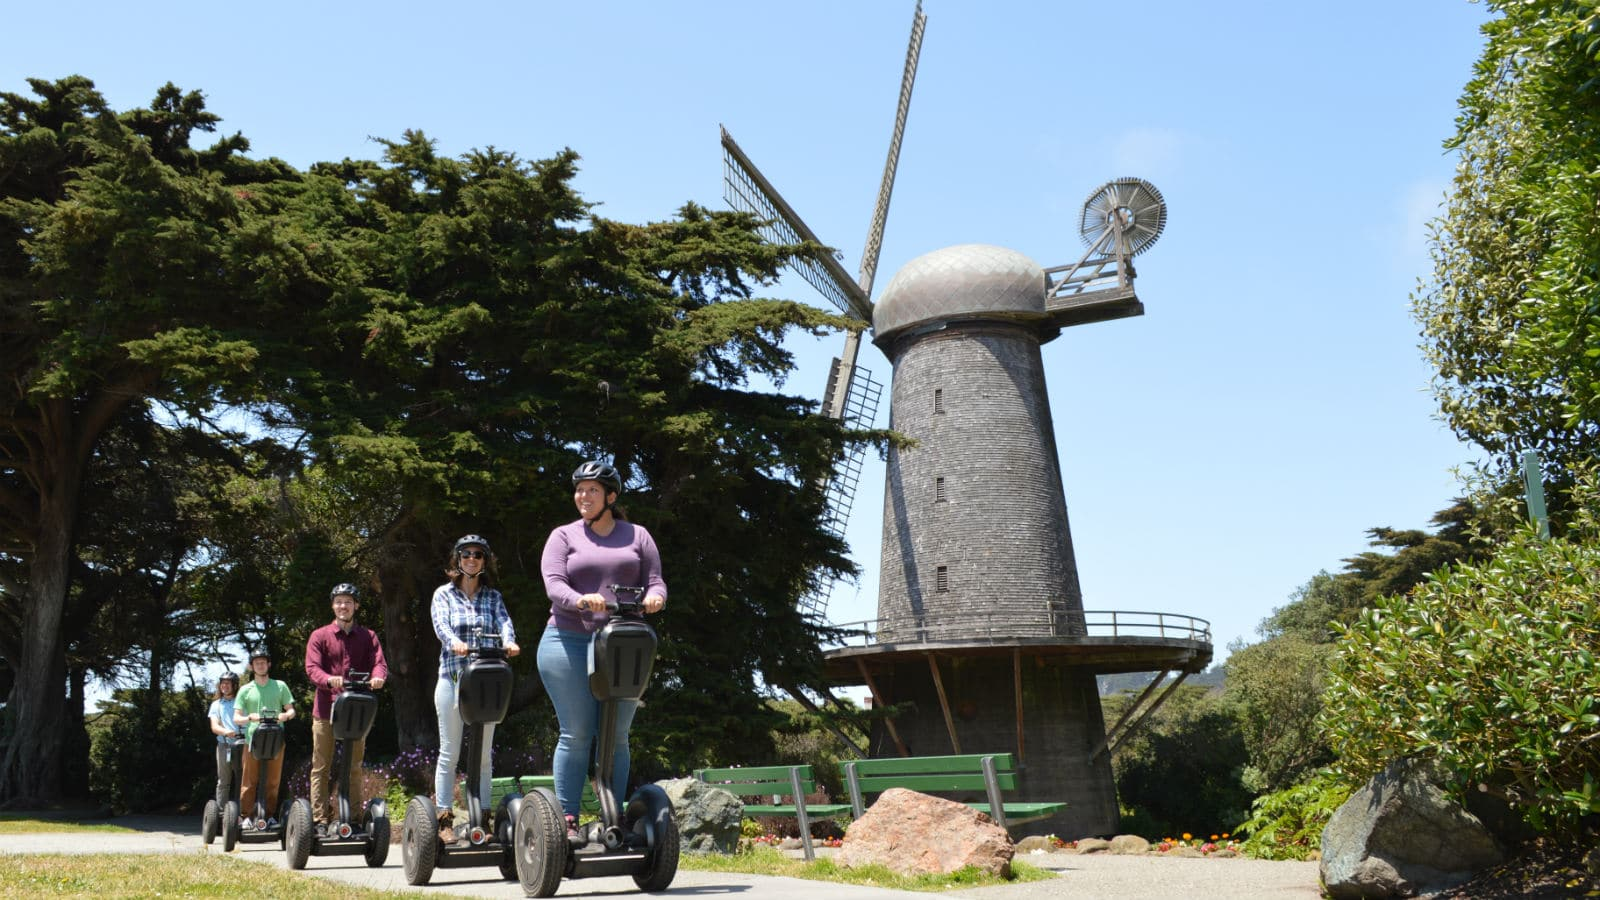 Golden Gate Park Segway Windmills